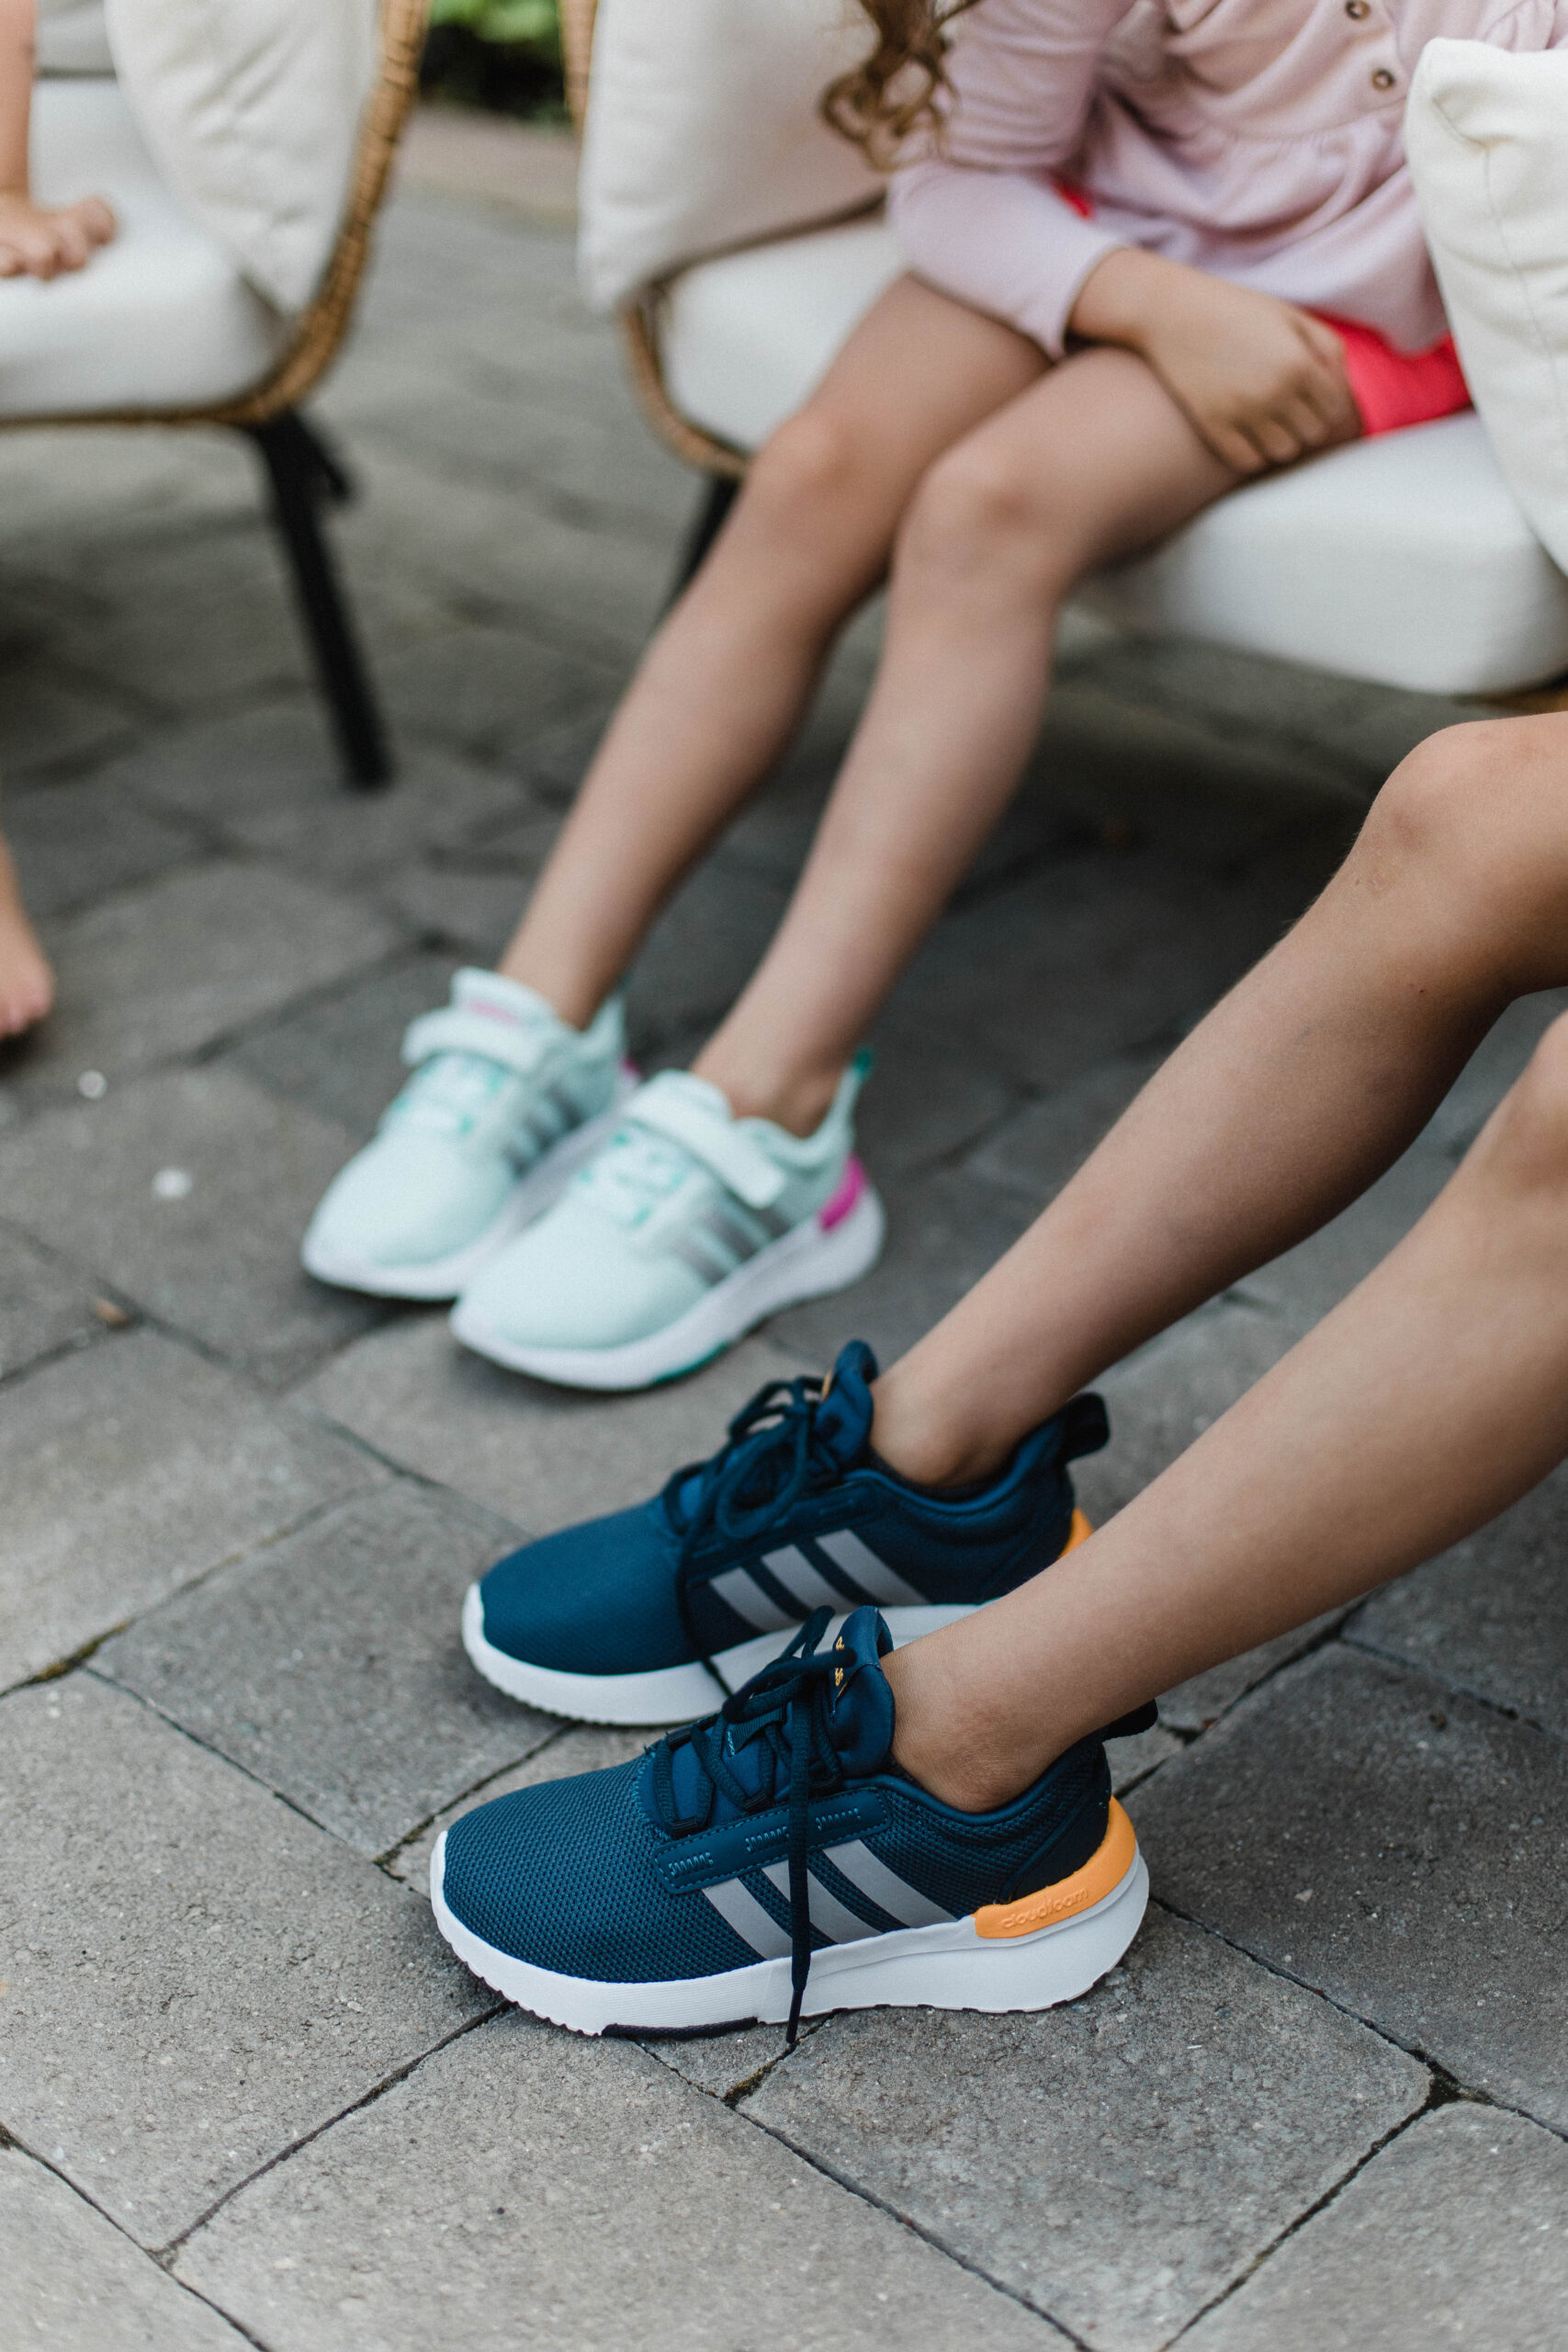 Looking for the best running shoes? Connecticut life and style blogger Lauren McBride shares her favorites.